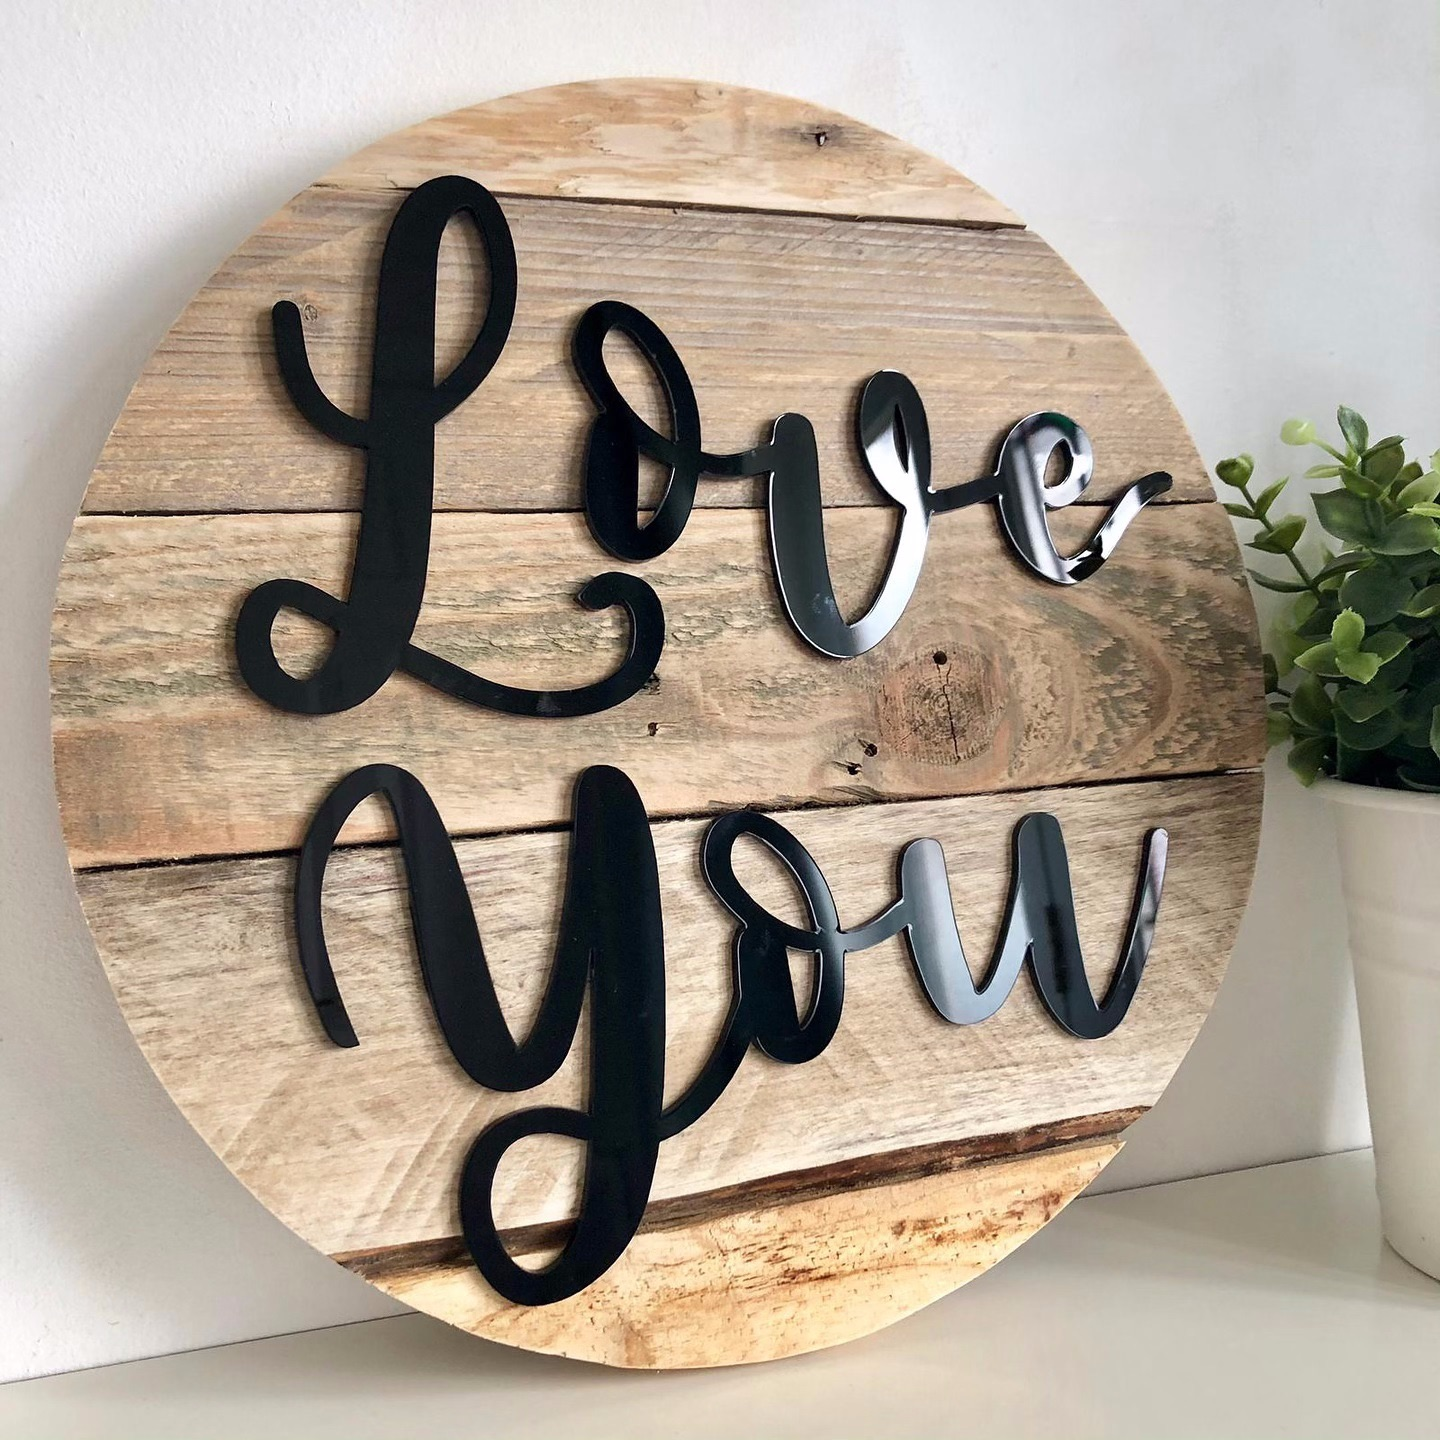 reclaimed pallet wood round with black acrylic lettering 'Love You'